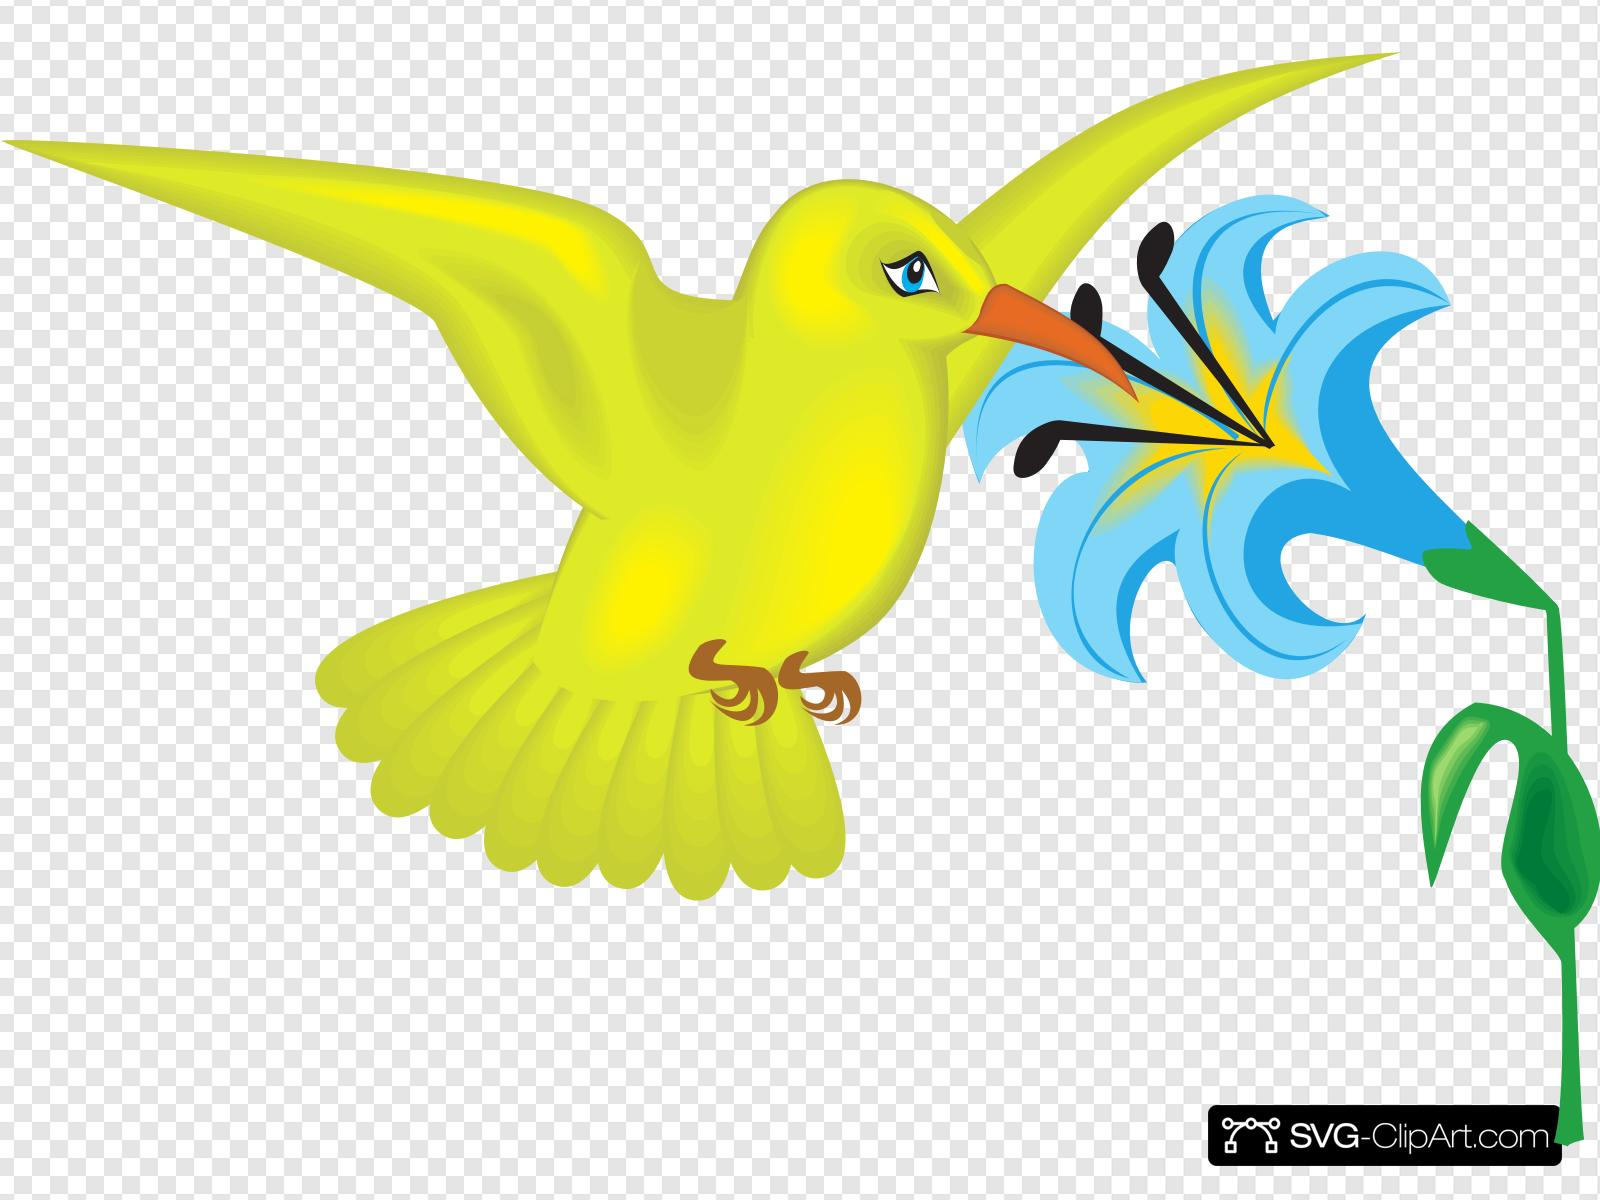 Yellow Hummingbird With Flower Clip art, Icon and SVG.